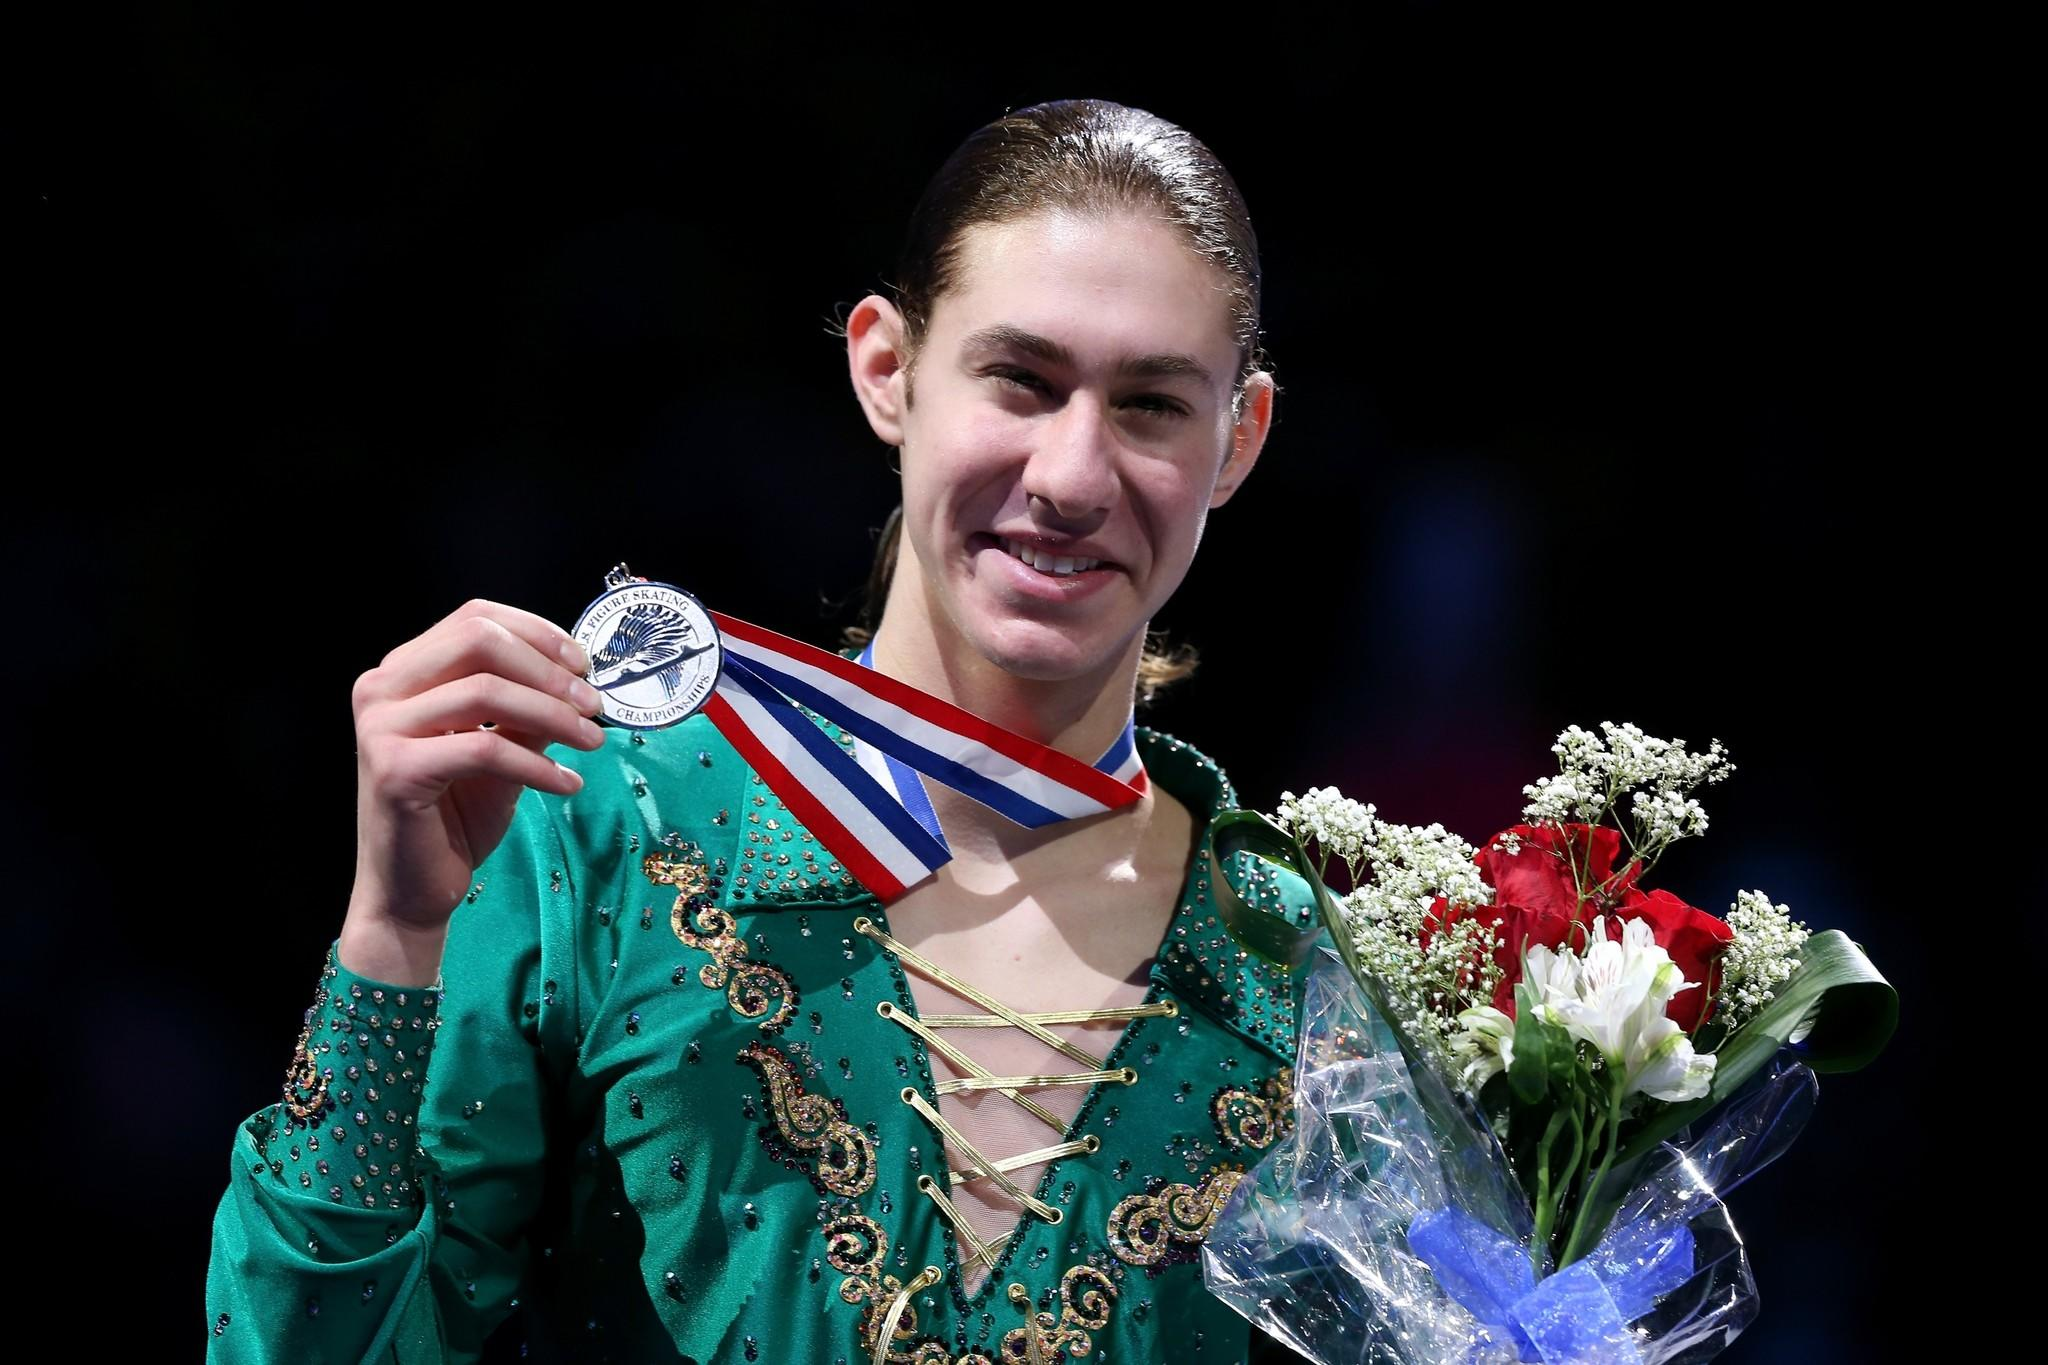 Jason Brown poses for photographers on the medals podium after the men's competition during the Prudential U.S. Figure Skating Championships. (Matthew Stockman/Getty Photo)